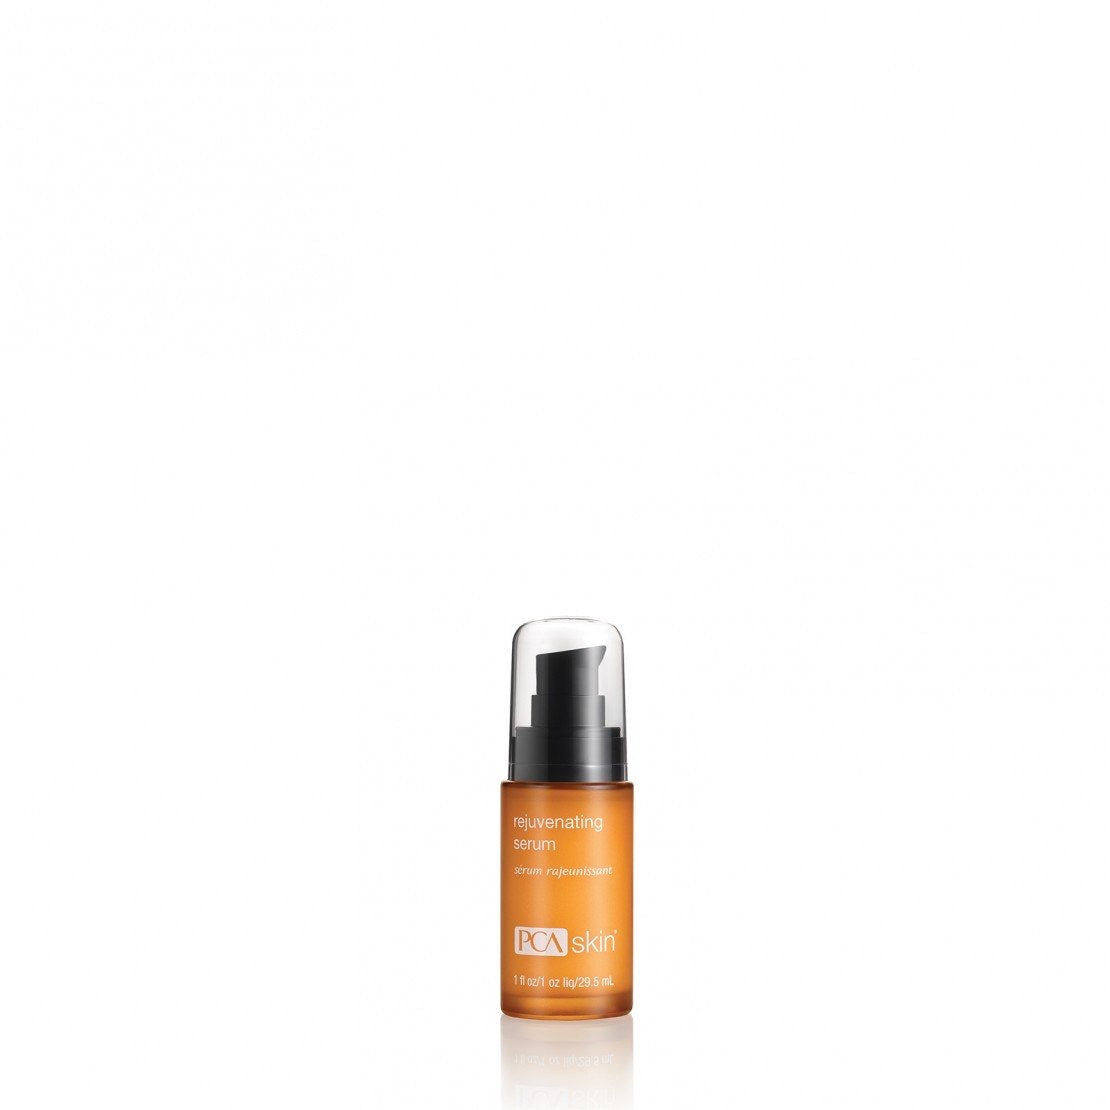 Pca Skin Rejuvenating serum.